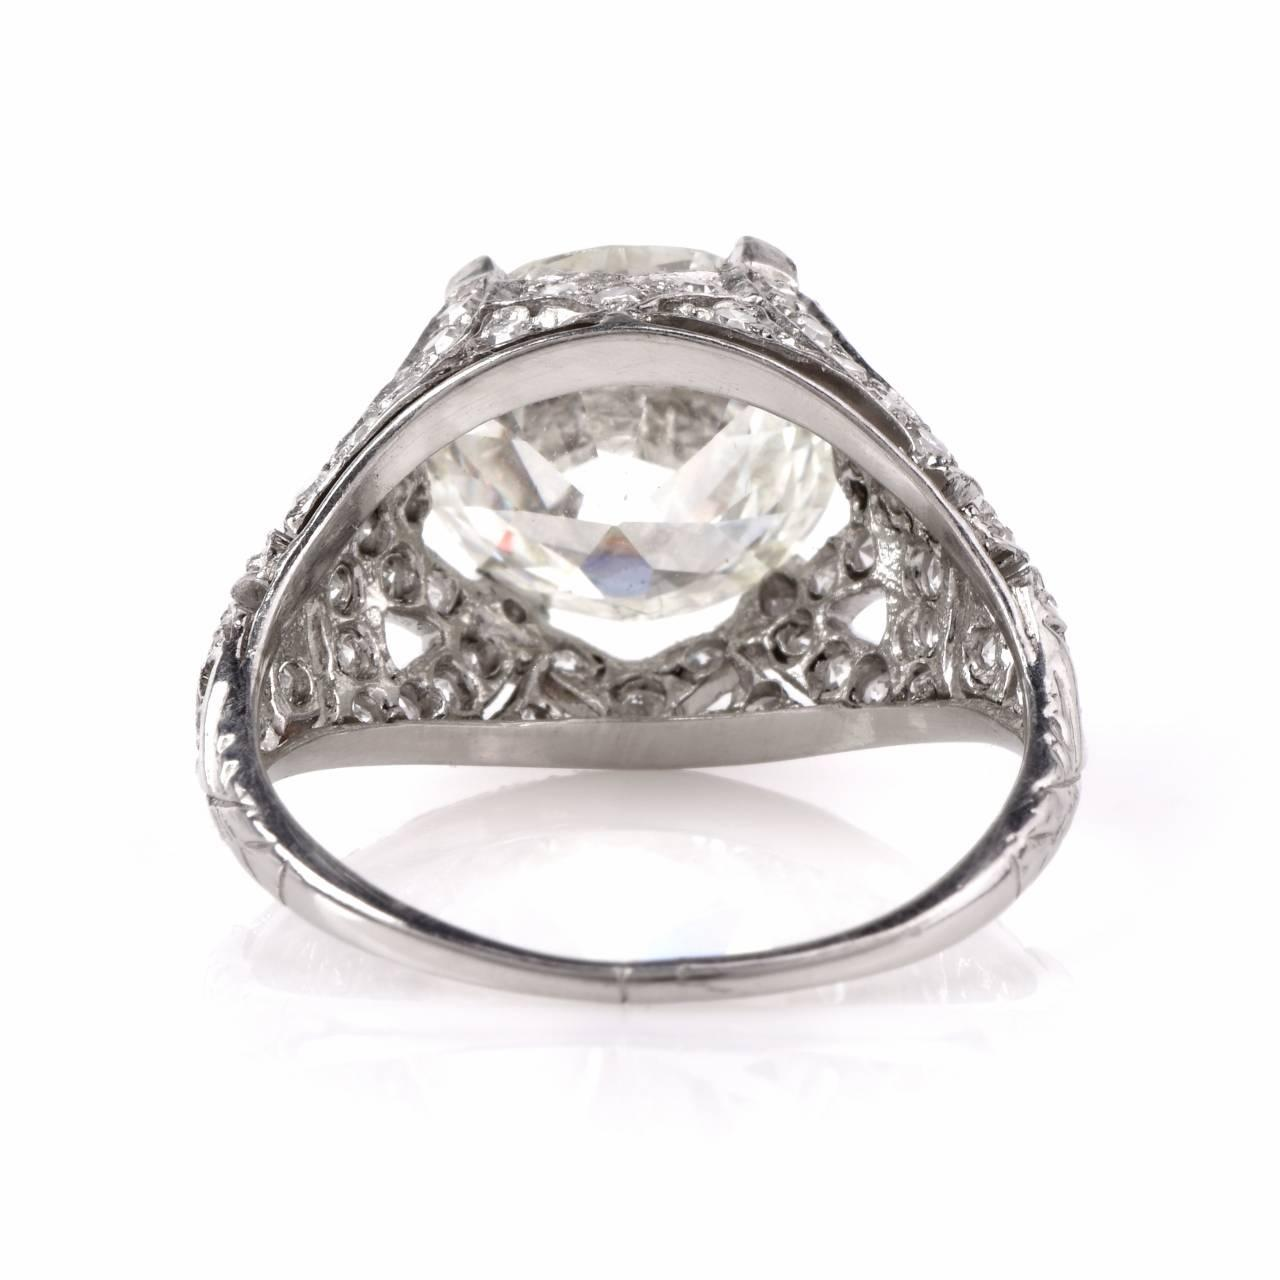 Antique 3 98 Carat Diamond Platinum Filigree Engagement Ring at 1stdibs